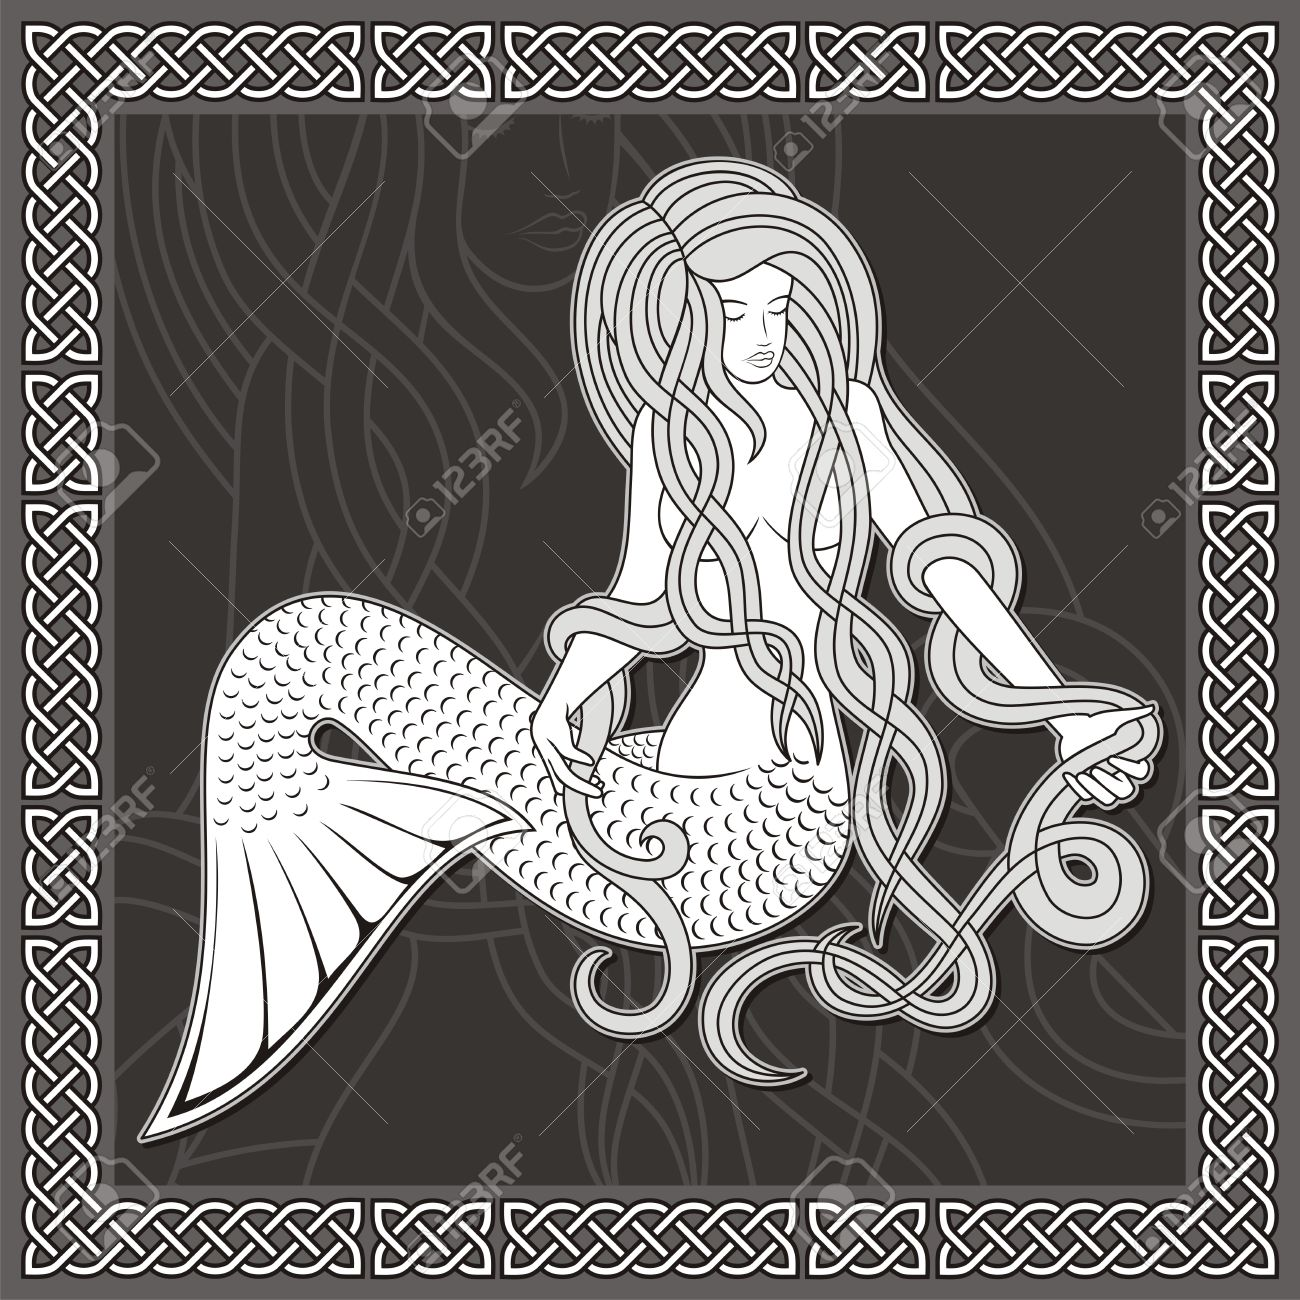 Illustration of a sitting mermaid with long hair on black background and celtic border. - 9851158